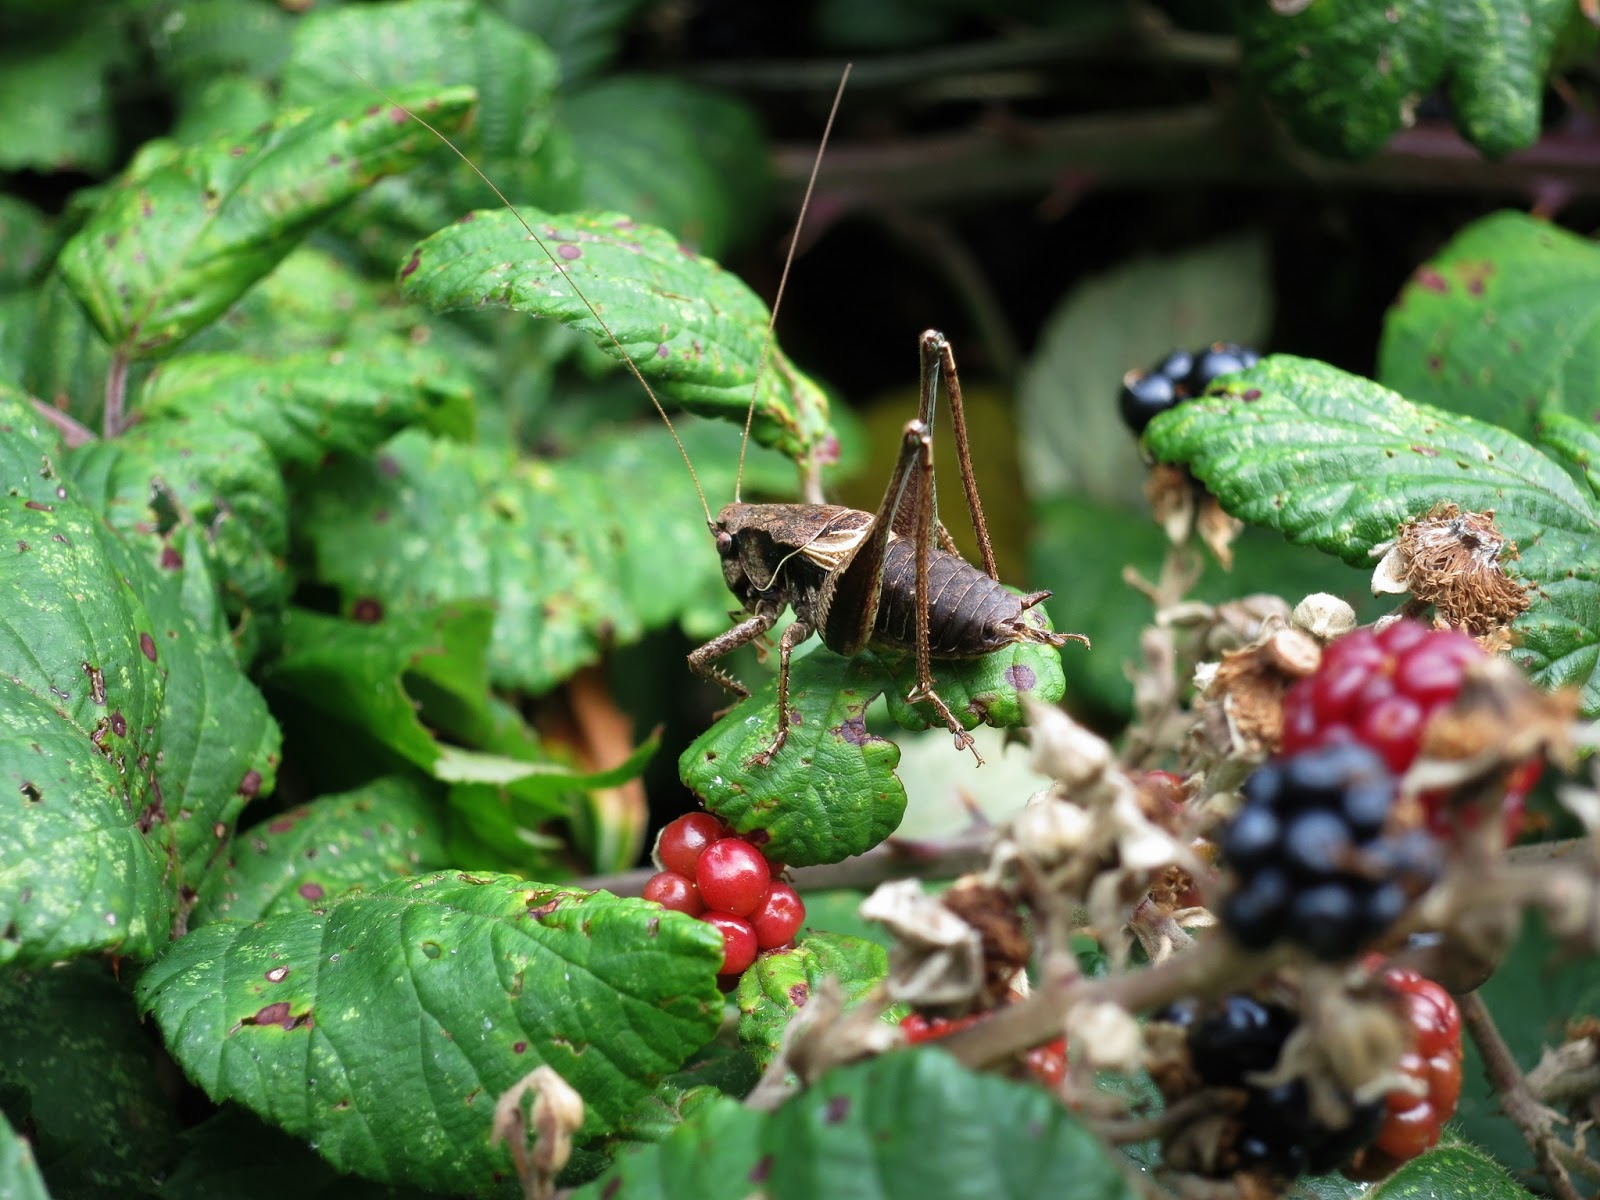 Dark Bush Cricket sitting on a bramble